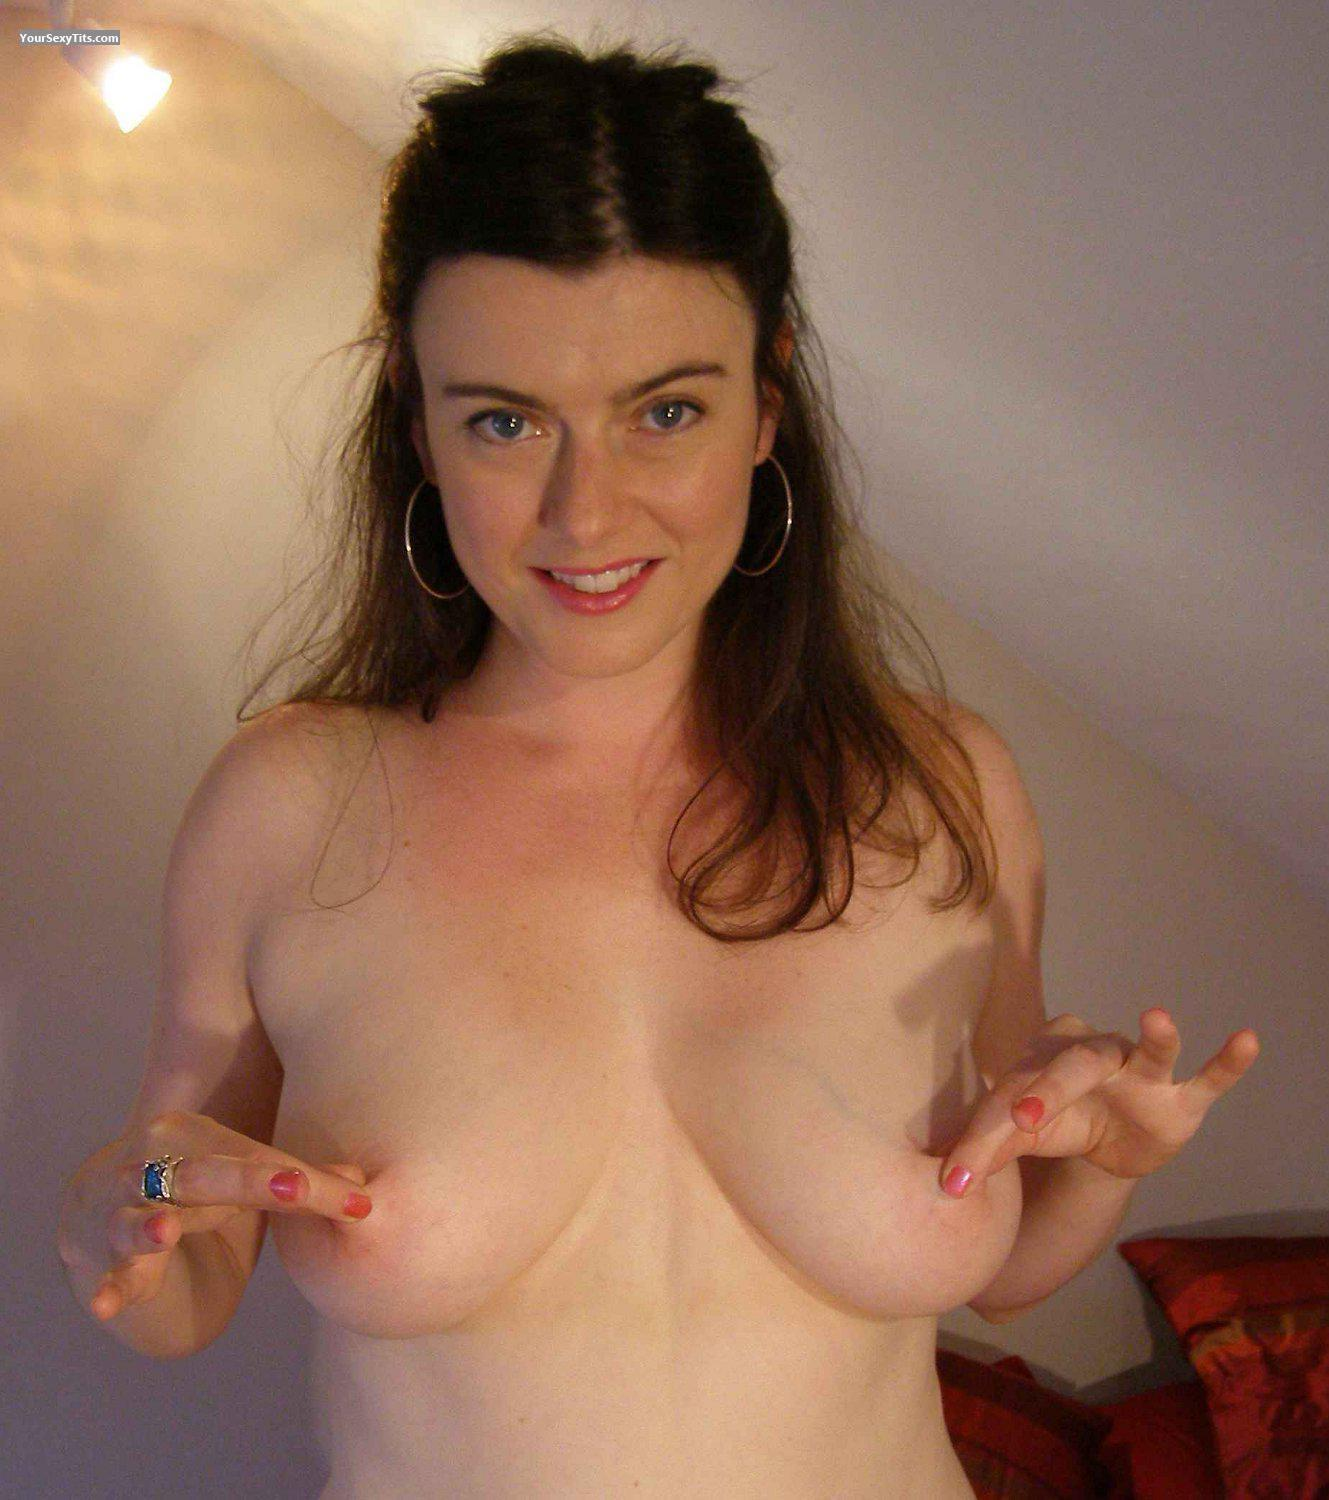 very big tits - topless beth from united kingdom tit flash id 96352